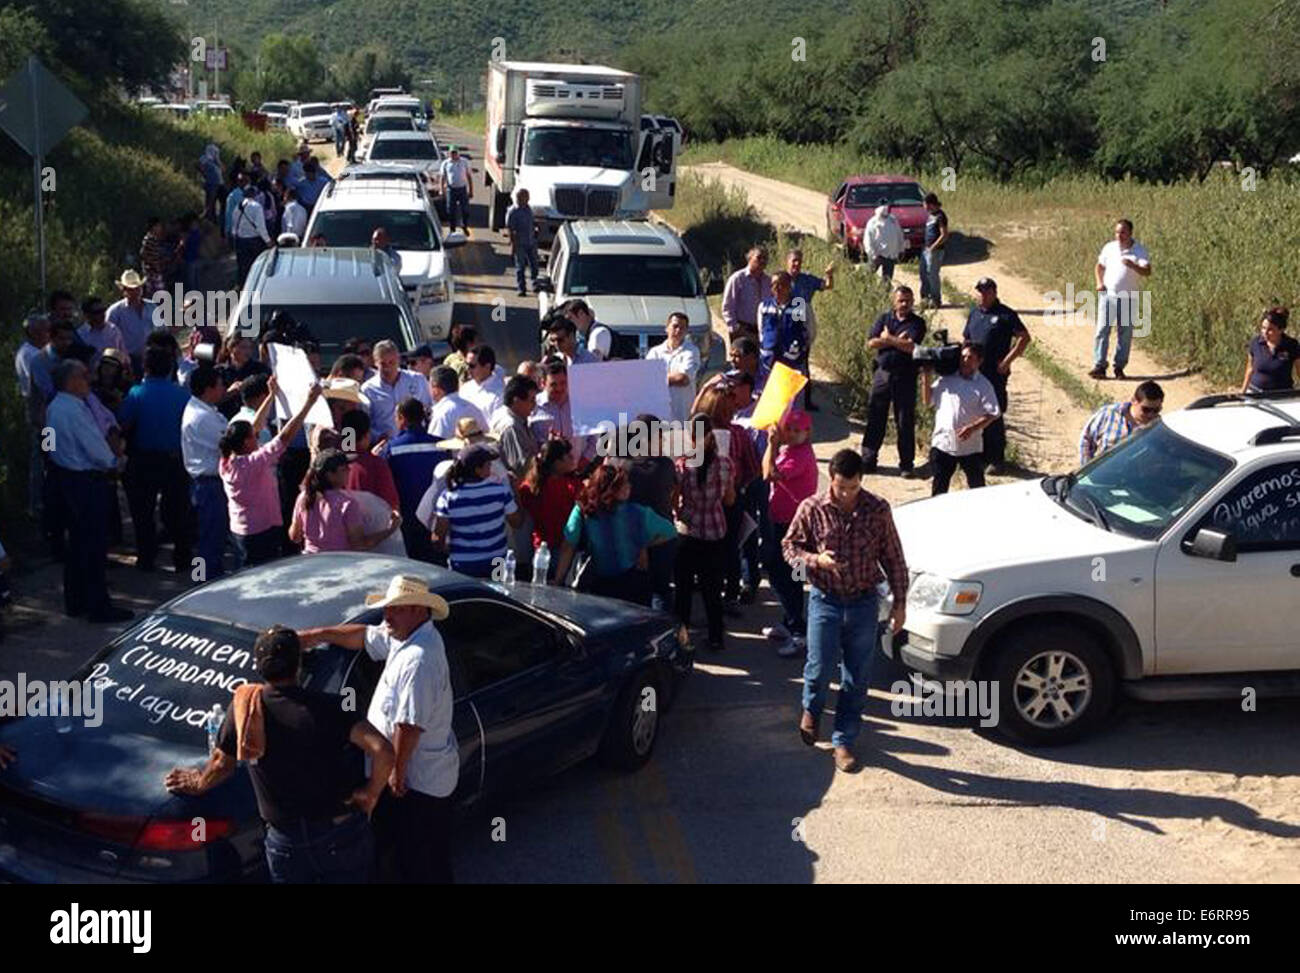 (140830) -- SONORA, Aug. 30, 2014 (Xinhua) -- Image taken on Aug. 27, 2014, of people taking part in a protest for - Stock Image